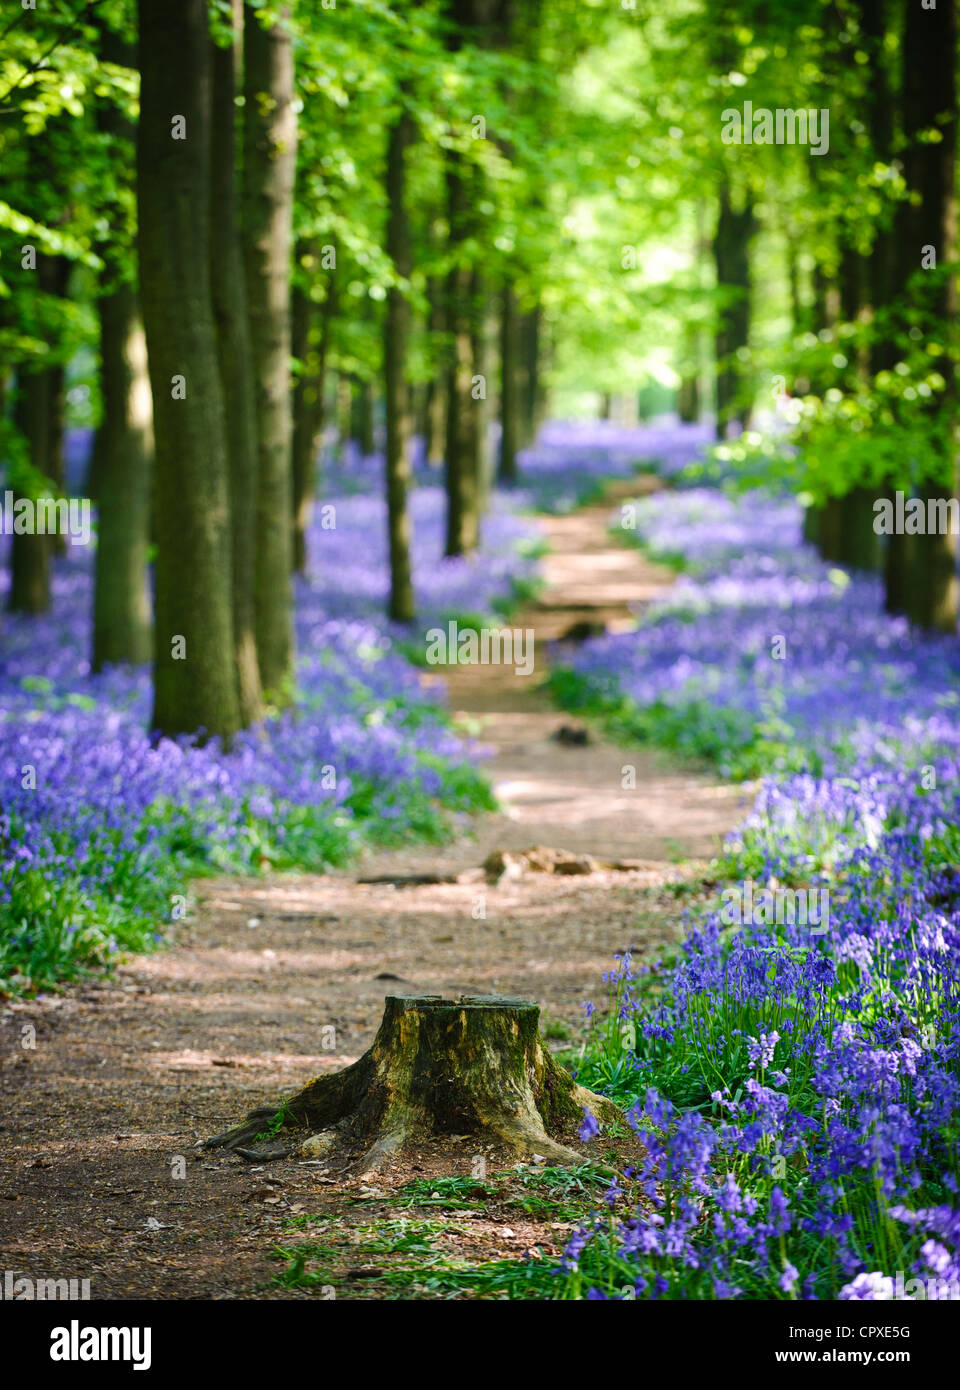 Bluebells in full bloom covering the floor in a carpet of blue in a beautiful beach tree woodland in Hertfordshire, - Stock Image